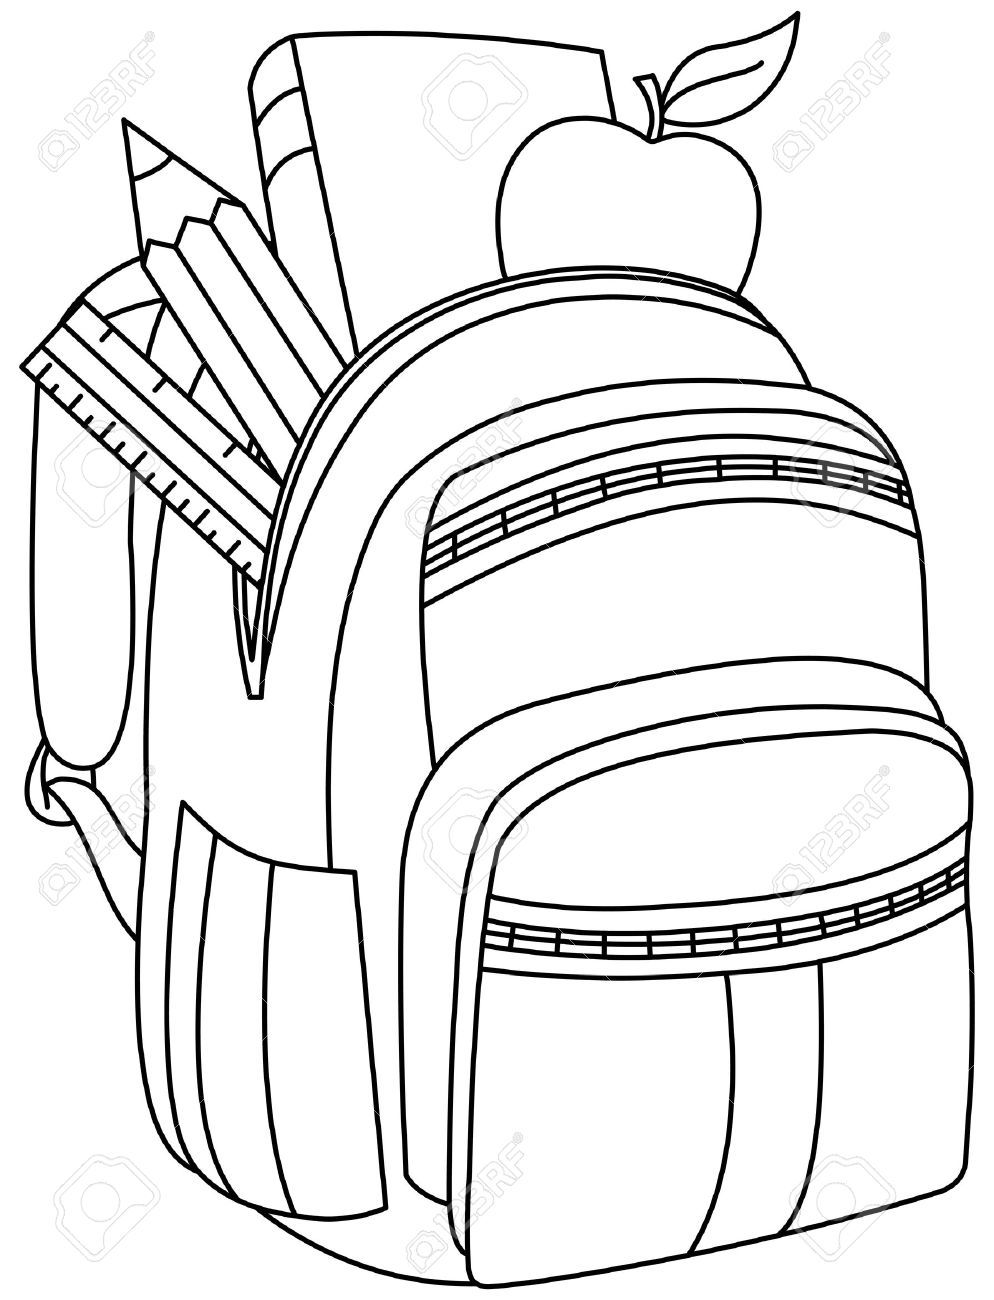 Backpack clipart black and white 6 » Clipart Portal.